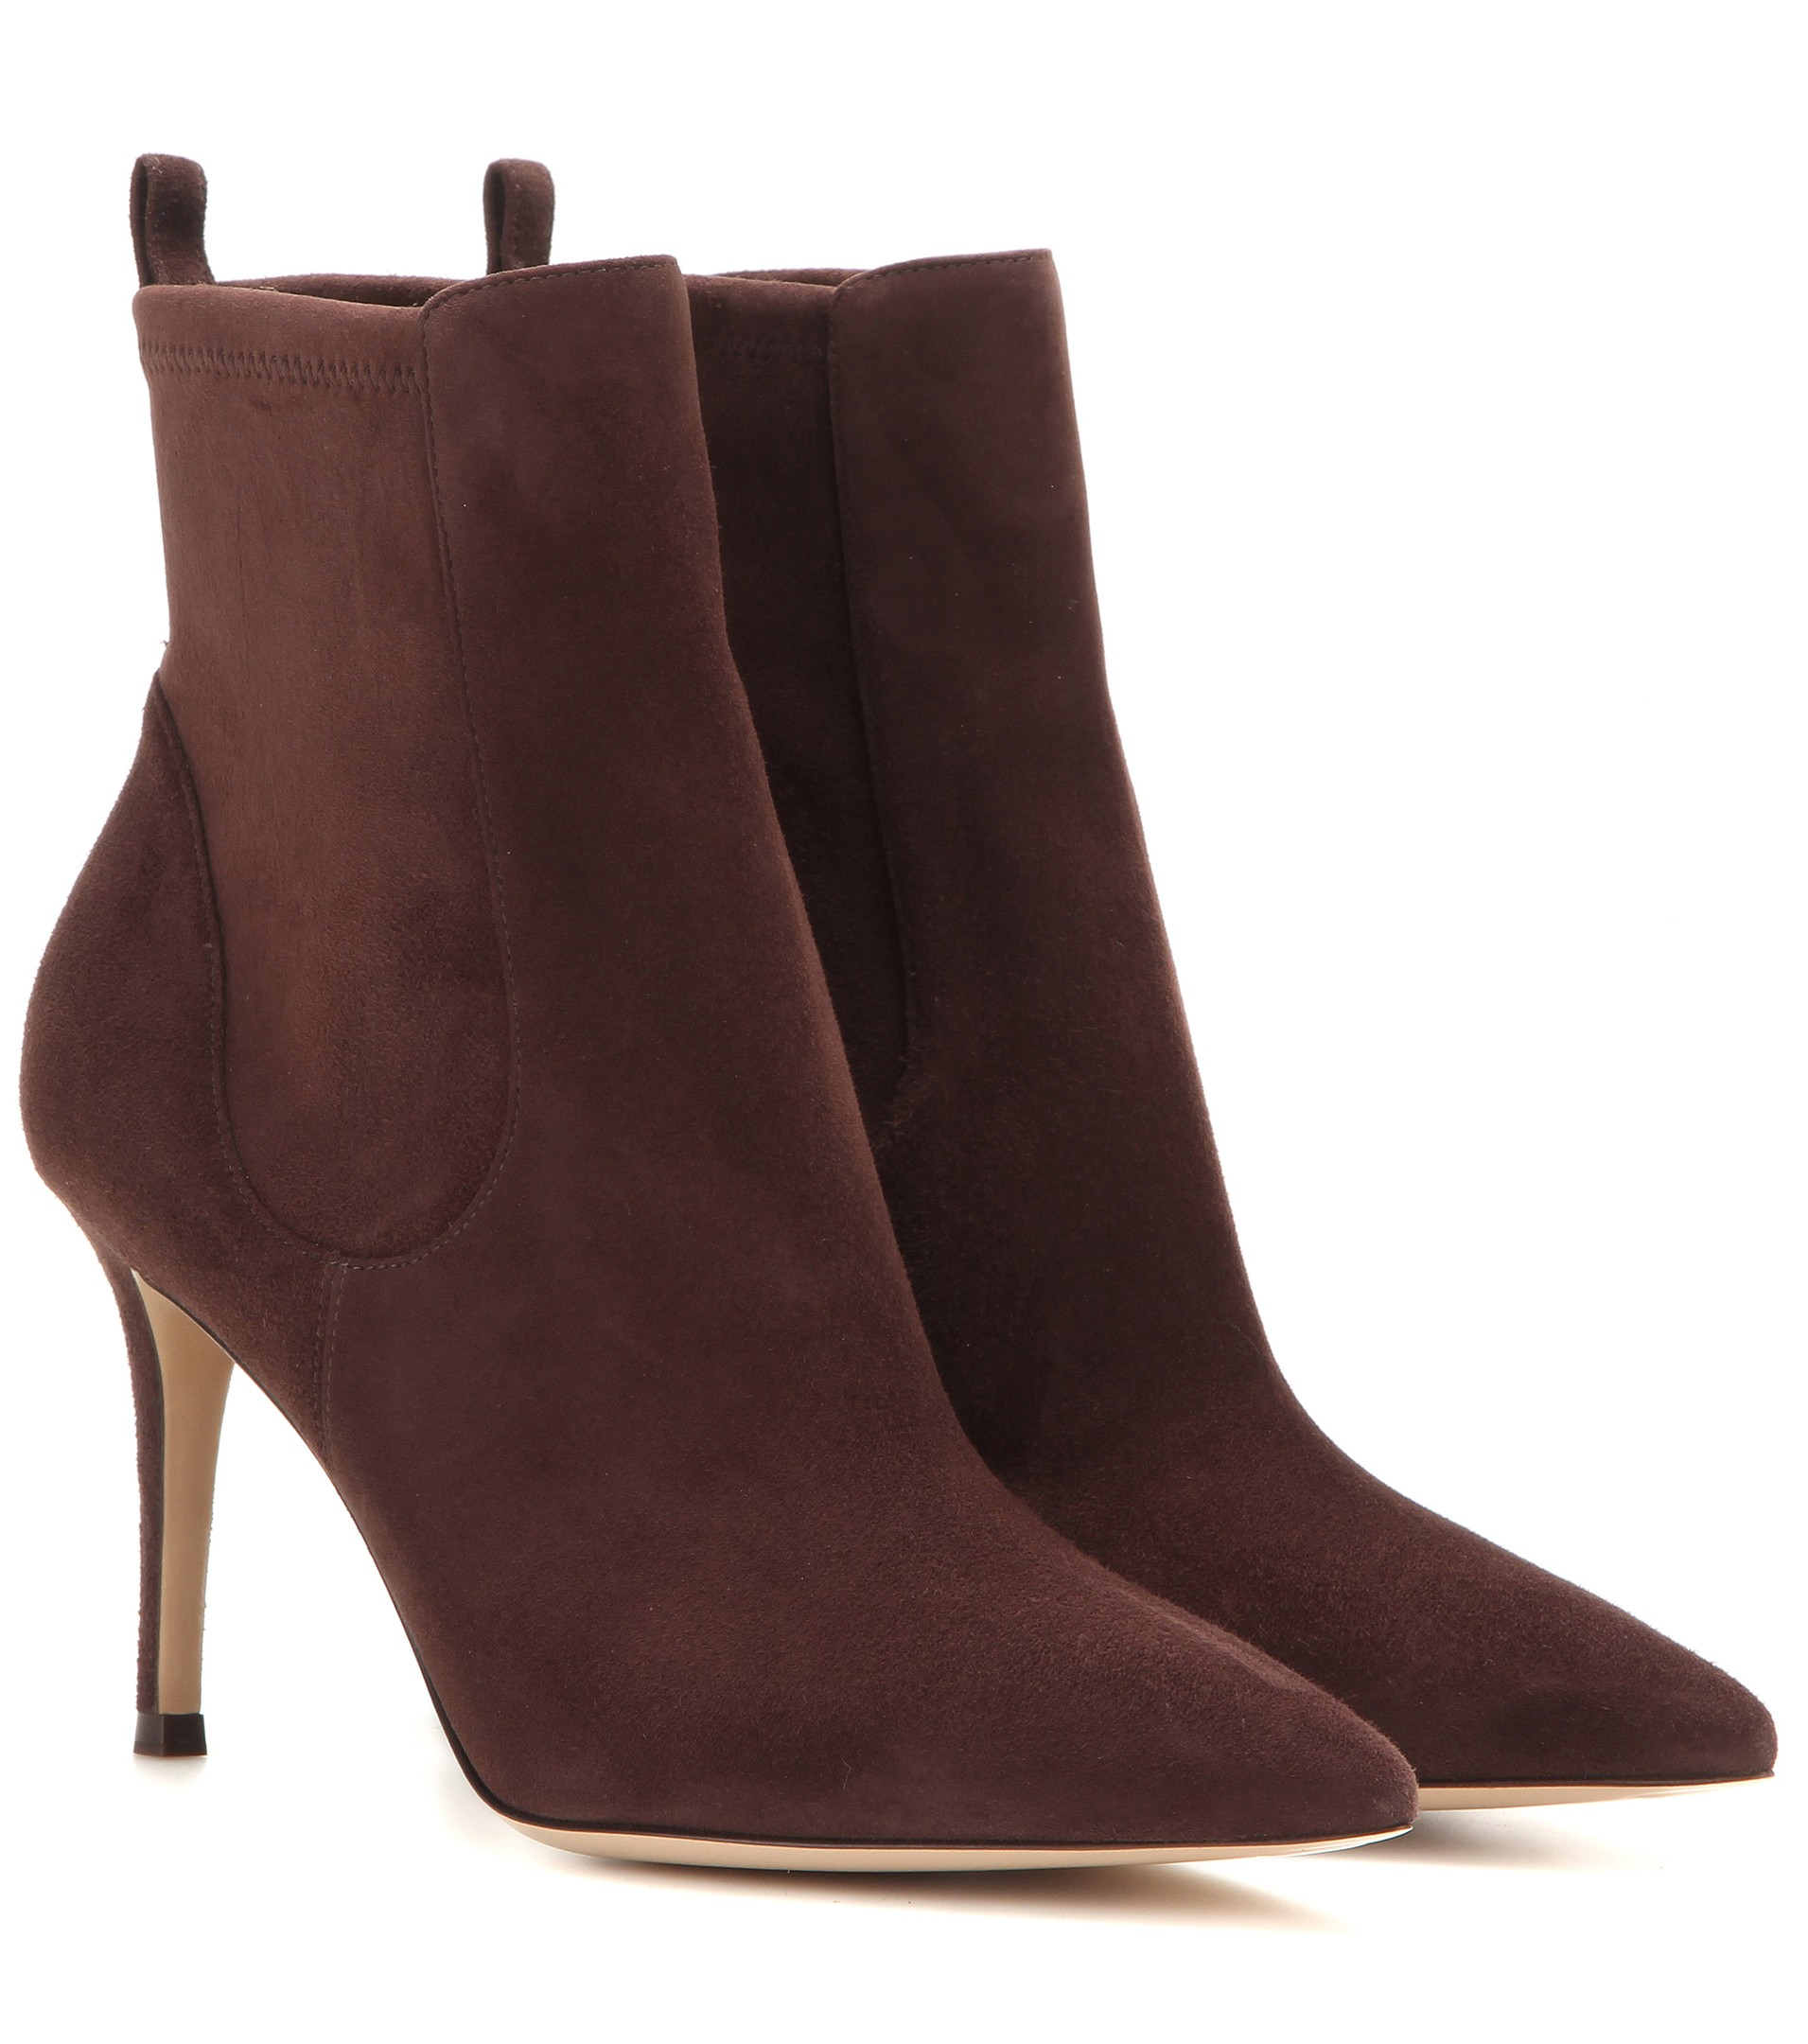 lyst gianvito rossi bennett suede ankle boots in red. Black Bedroom Furniture Sets. Home Design Ideas